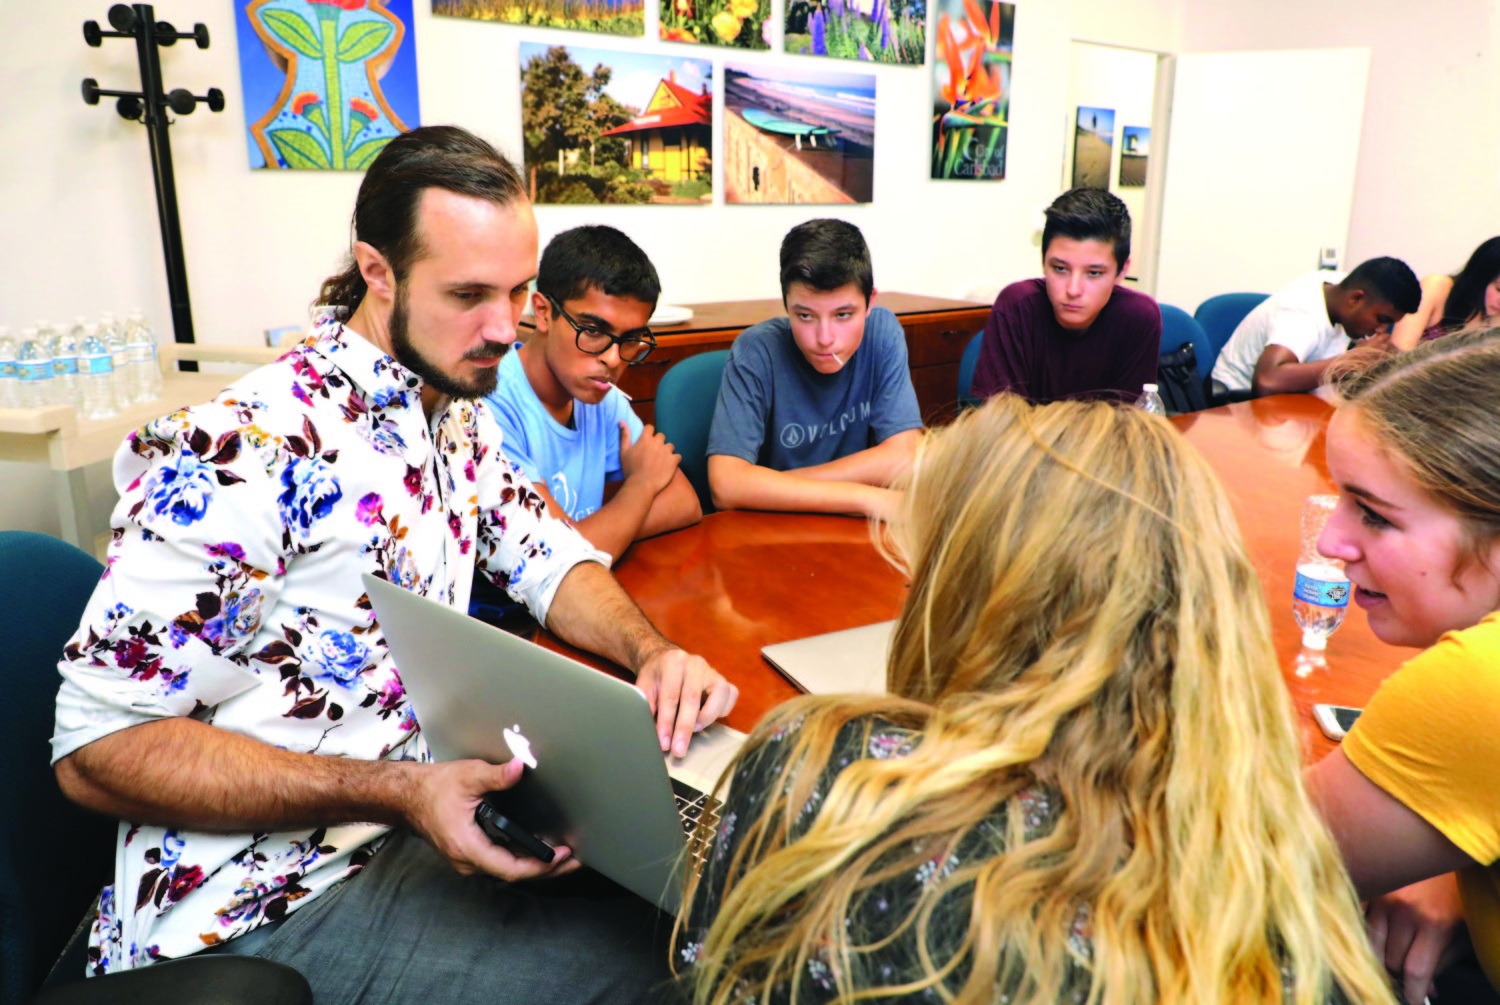 Program aims to make leaders